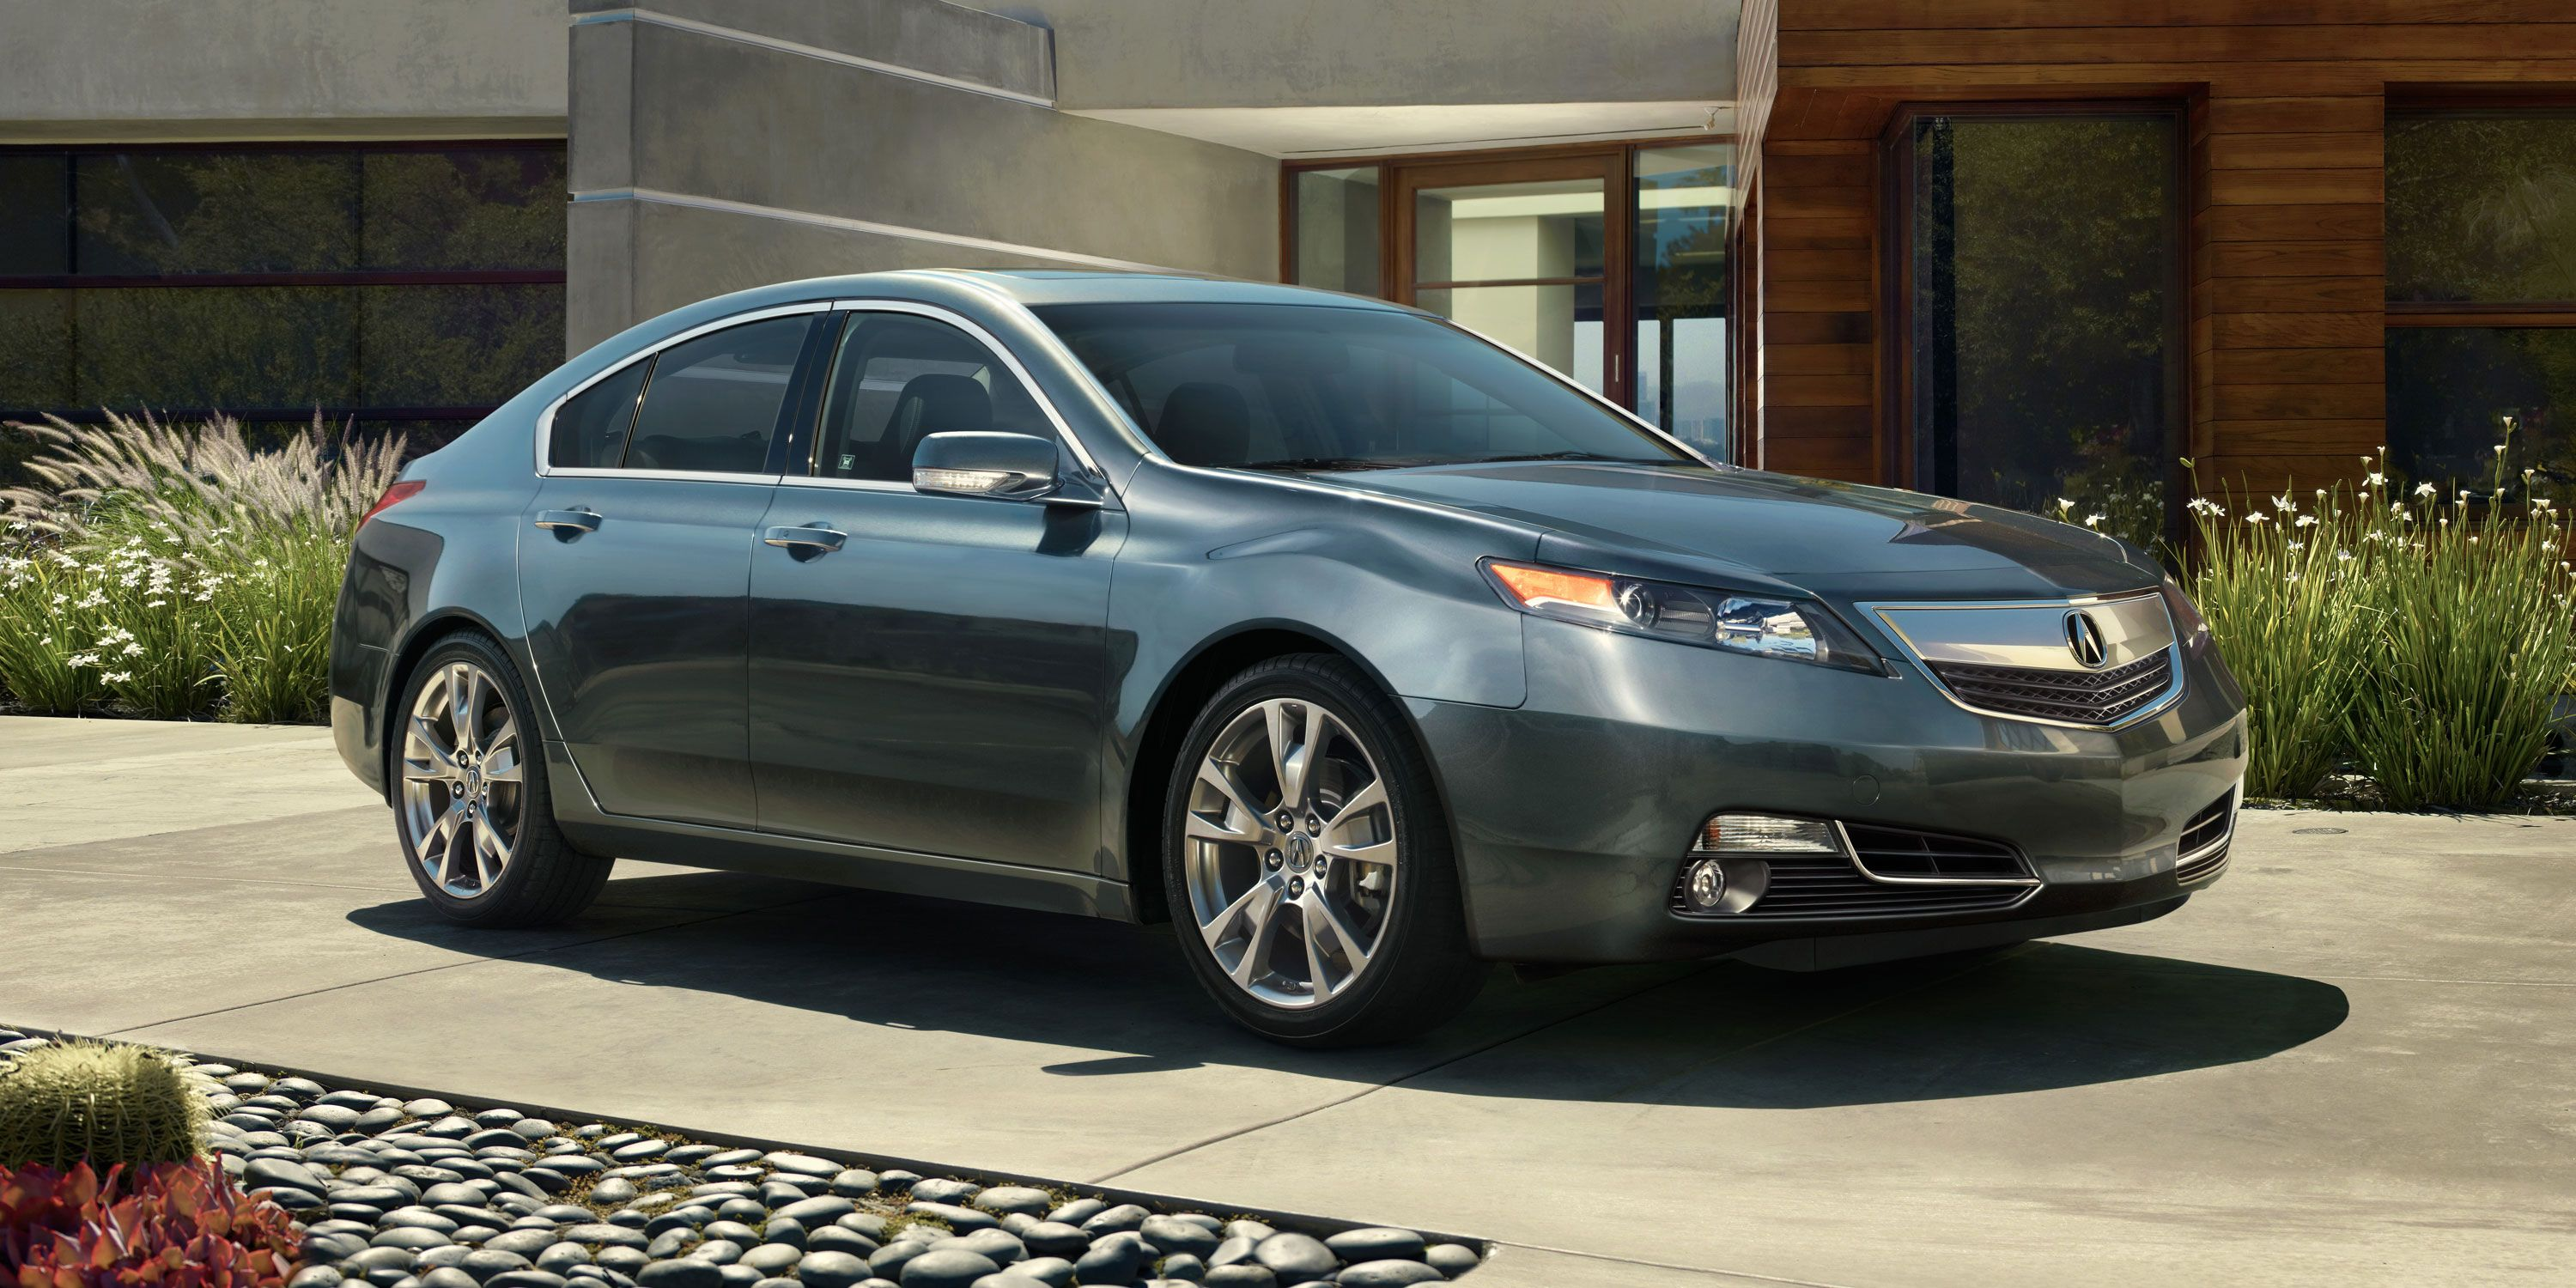 gallery lease rdx car collection inspirational image design wallpaper top acura stylish and